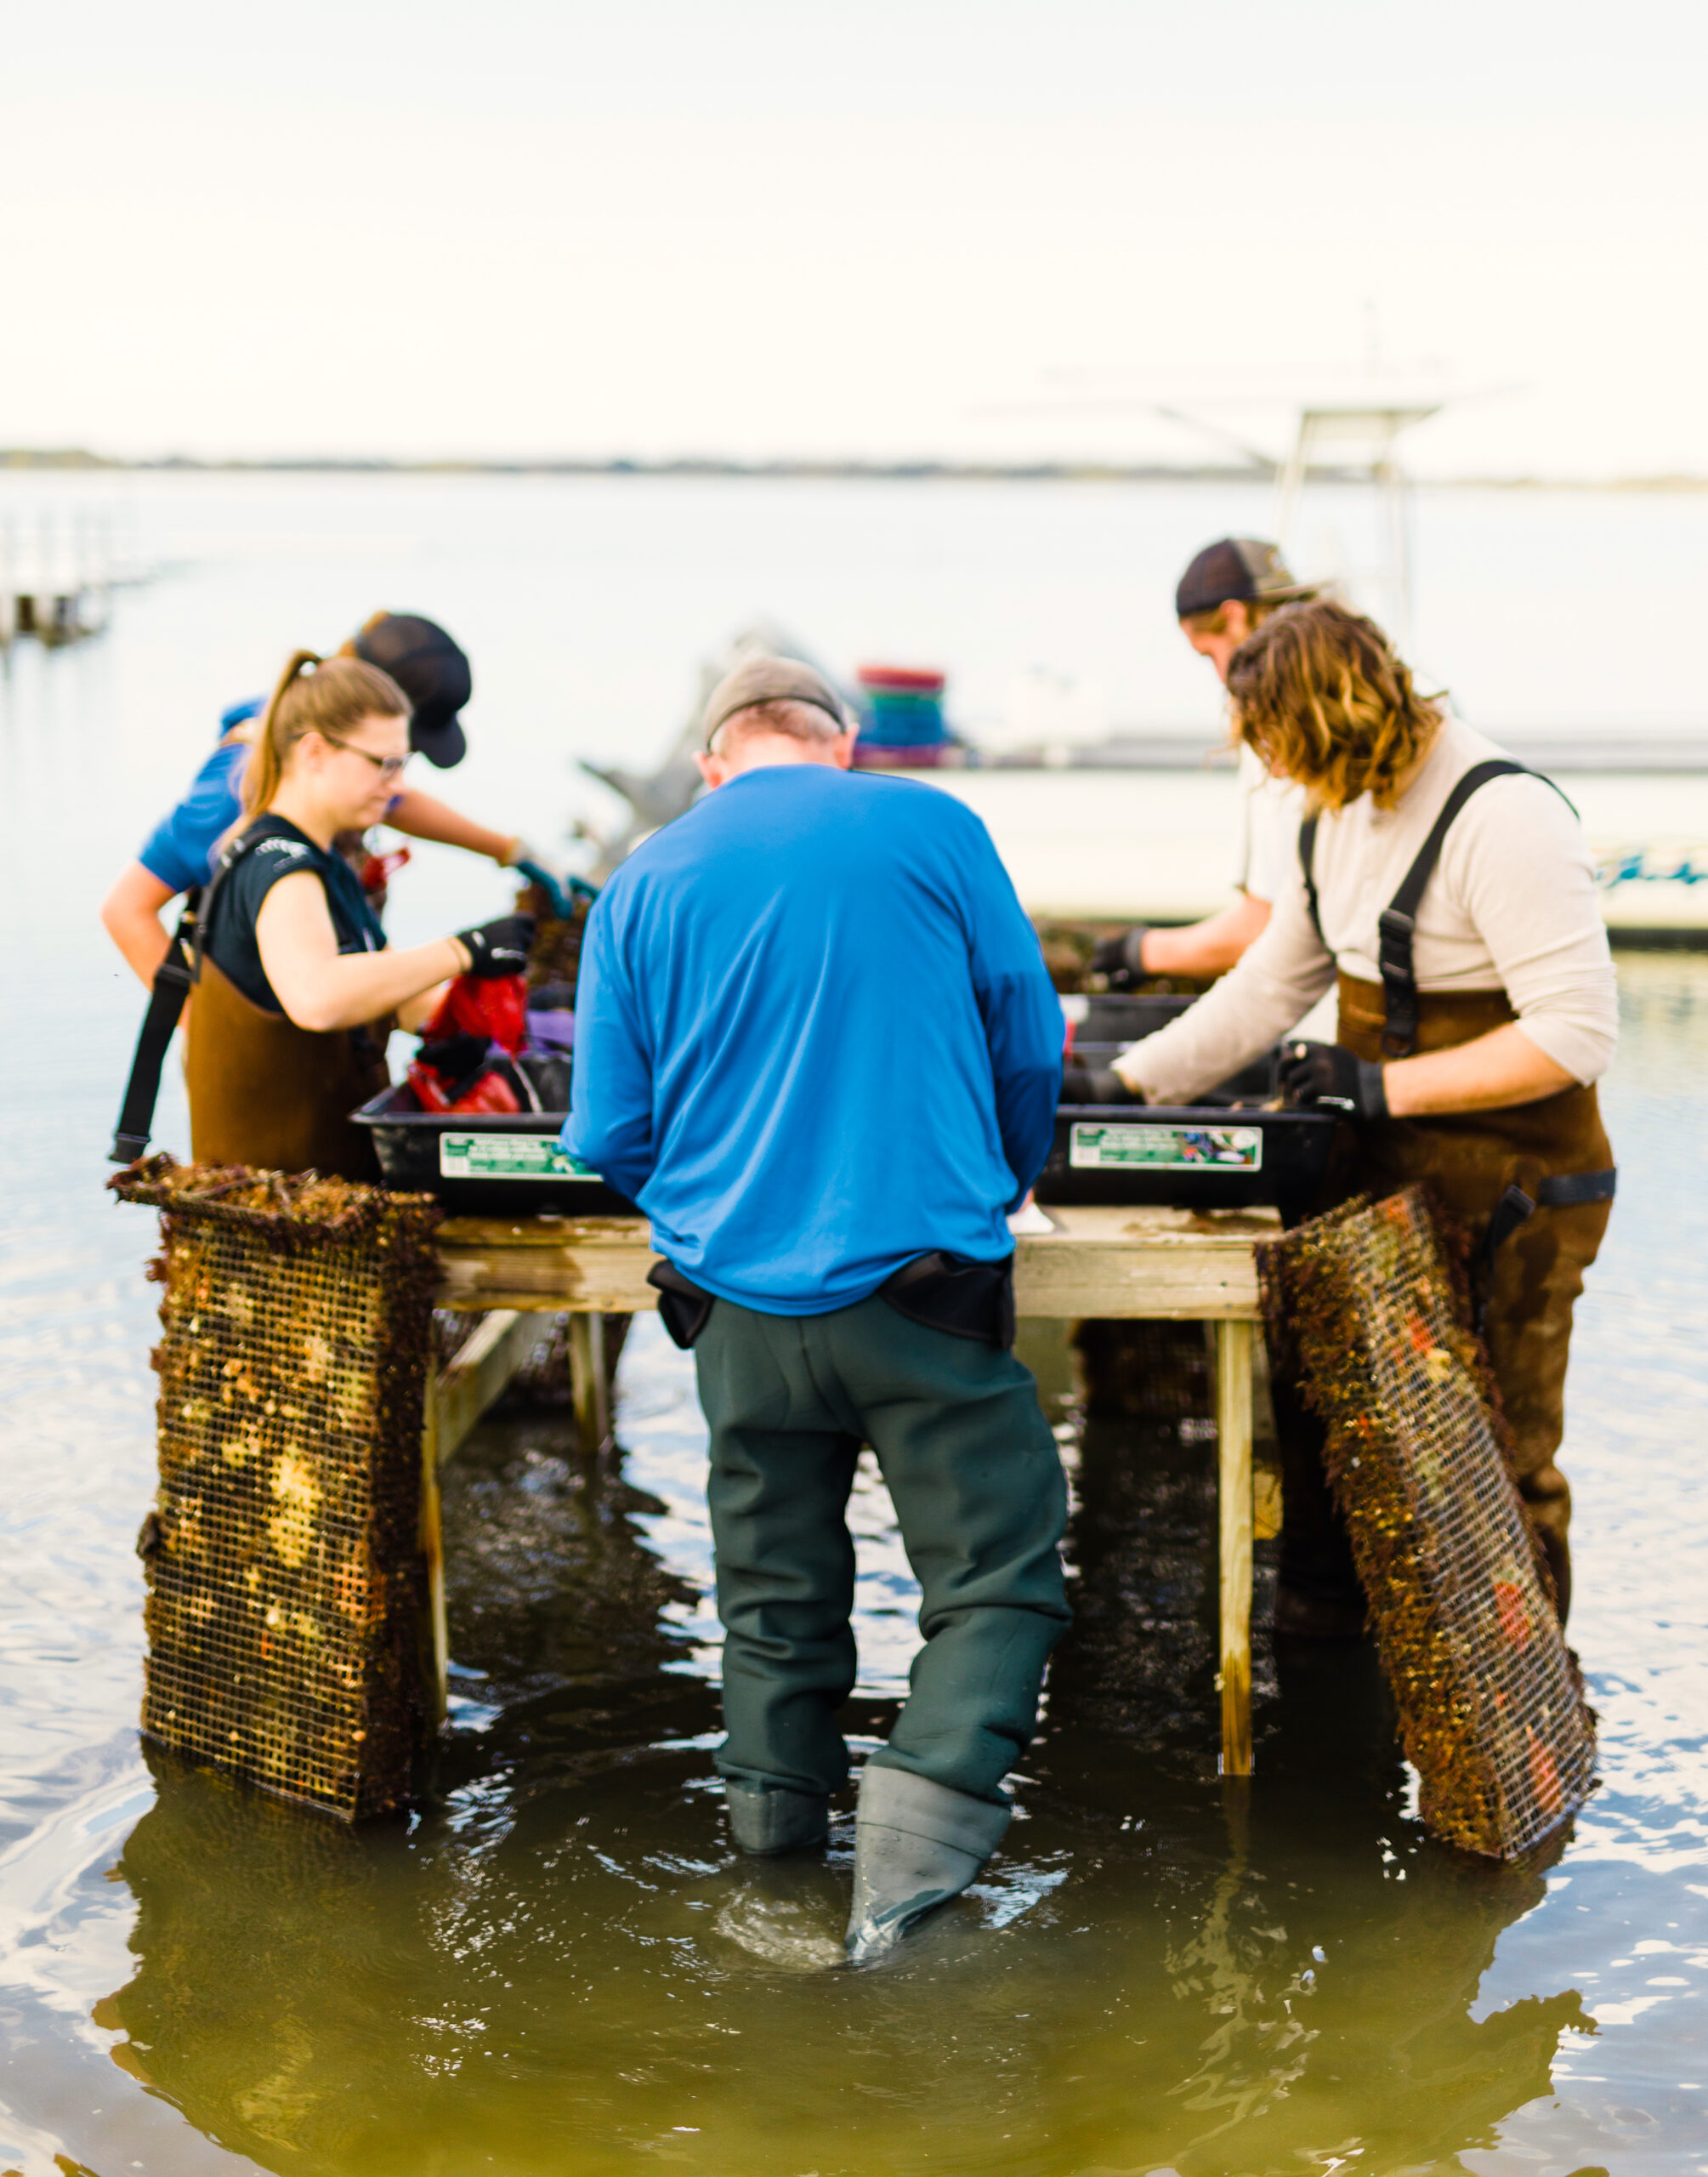 Students were among key members of a pre-pandemic Sea Grant research team that identified best methods and gear for oyster growout in various locations along the coast. Credit:Baxter Miller